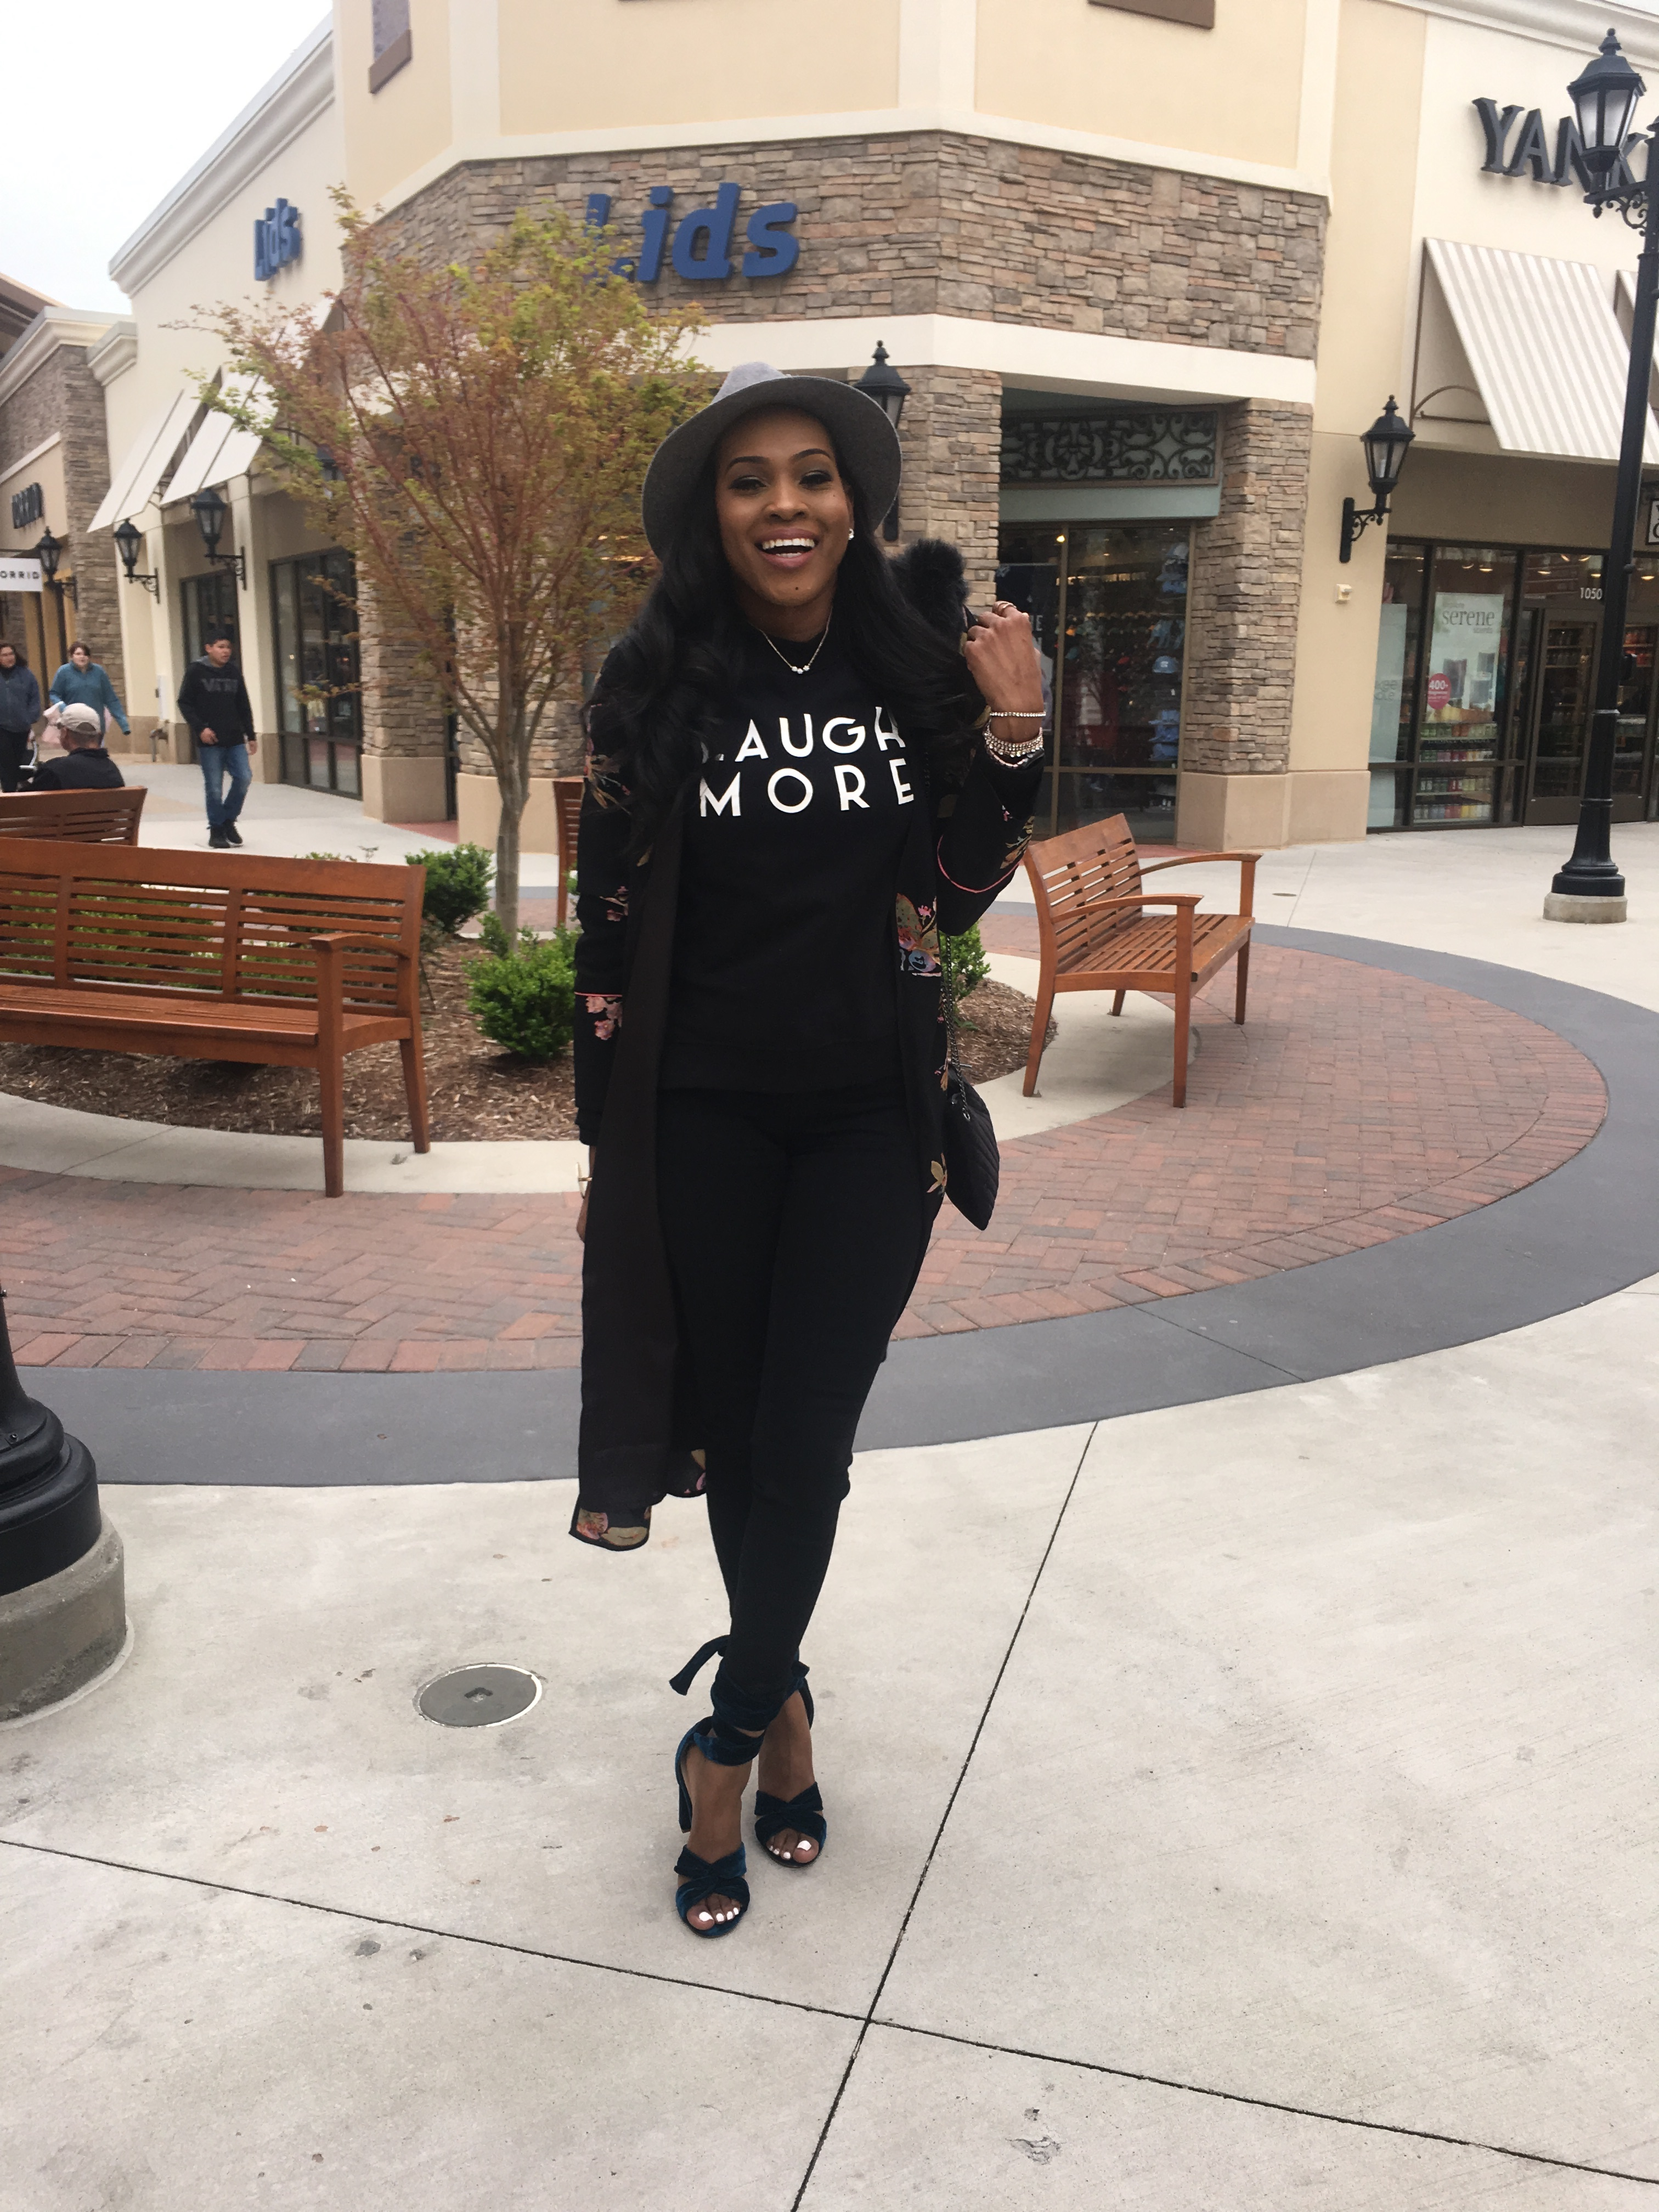 Style-Files-Black-floral-kimono-black-denim-jeans-HM-laugh-more-sweatshirt-justfab-teal-velvet-Acacia Heeled Sandals-Topgolf Charlotte-review-birmingham-top-bloggers-alabama-style-bloggers-oohlalablog-29